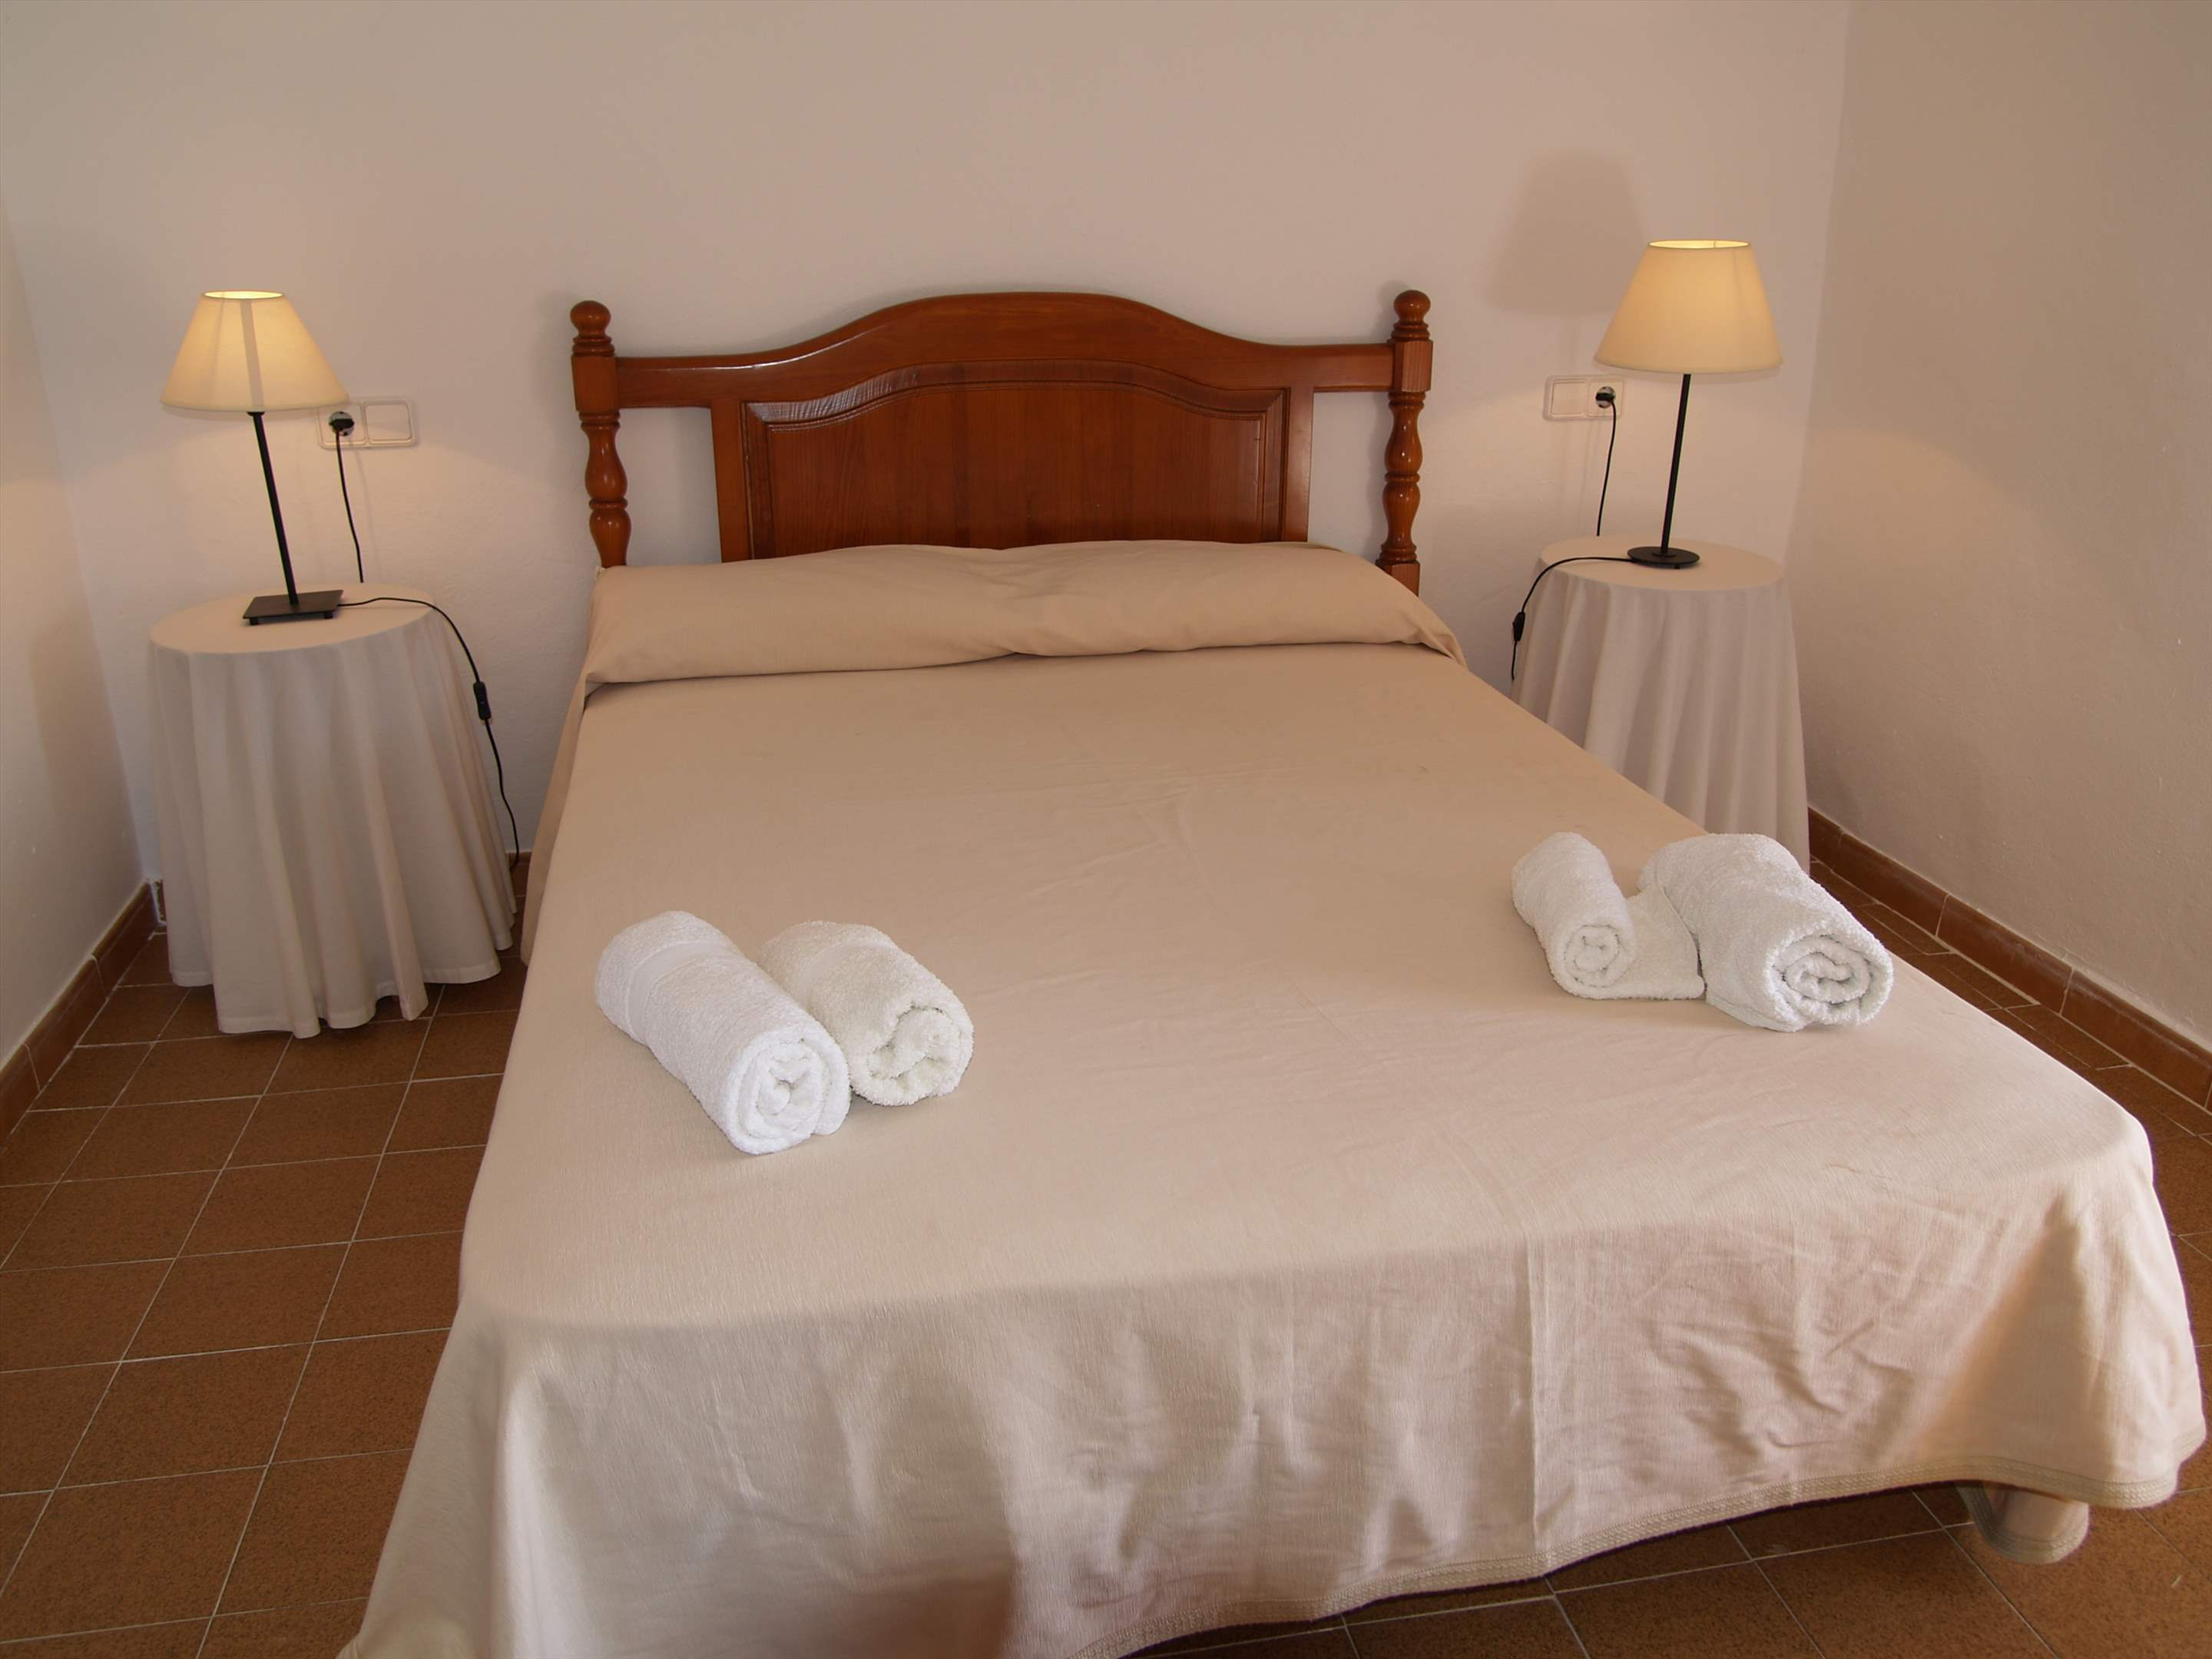 Son Rengo, 3 bedroom villa in Campos & Sa Rapita , Majorca Photo #11